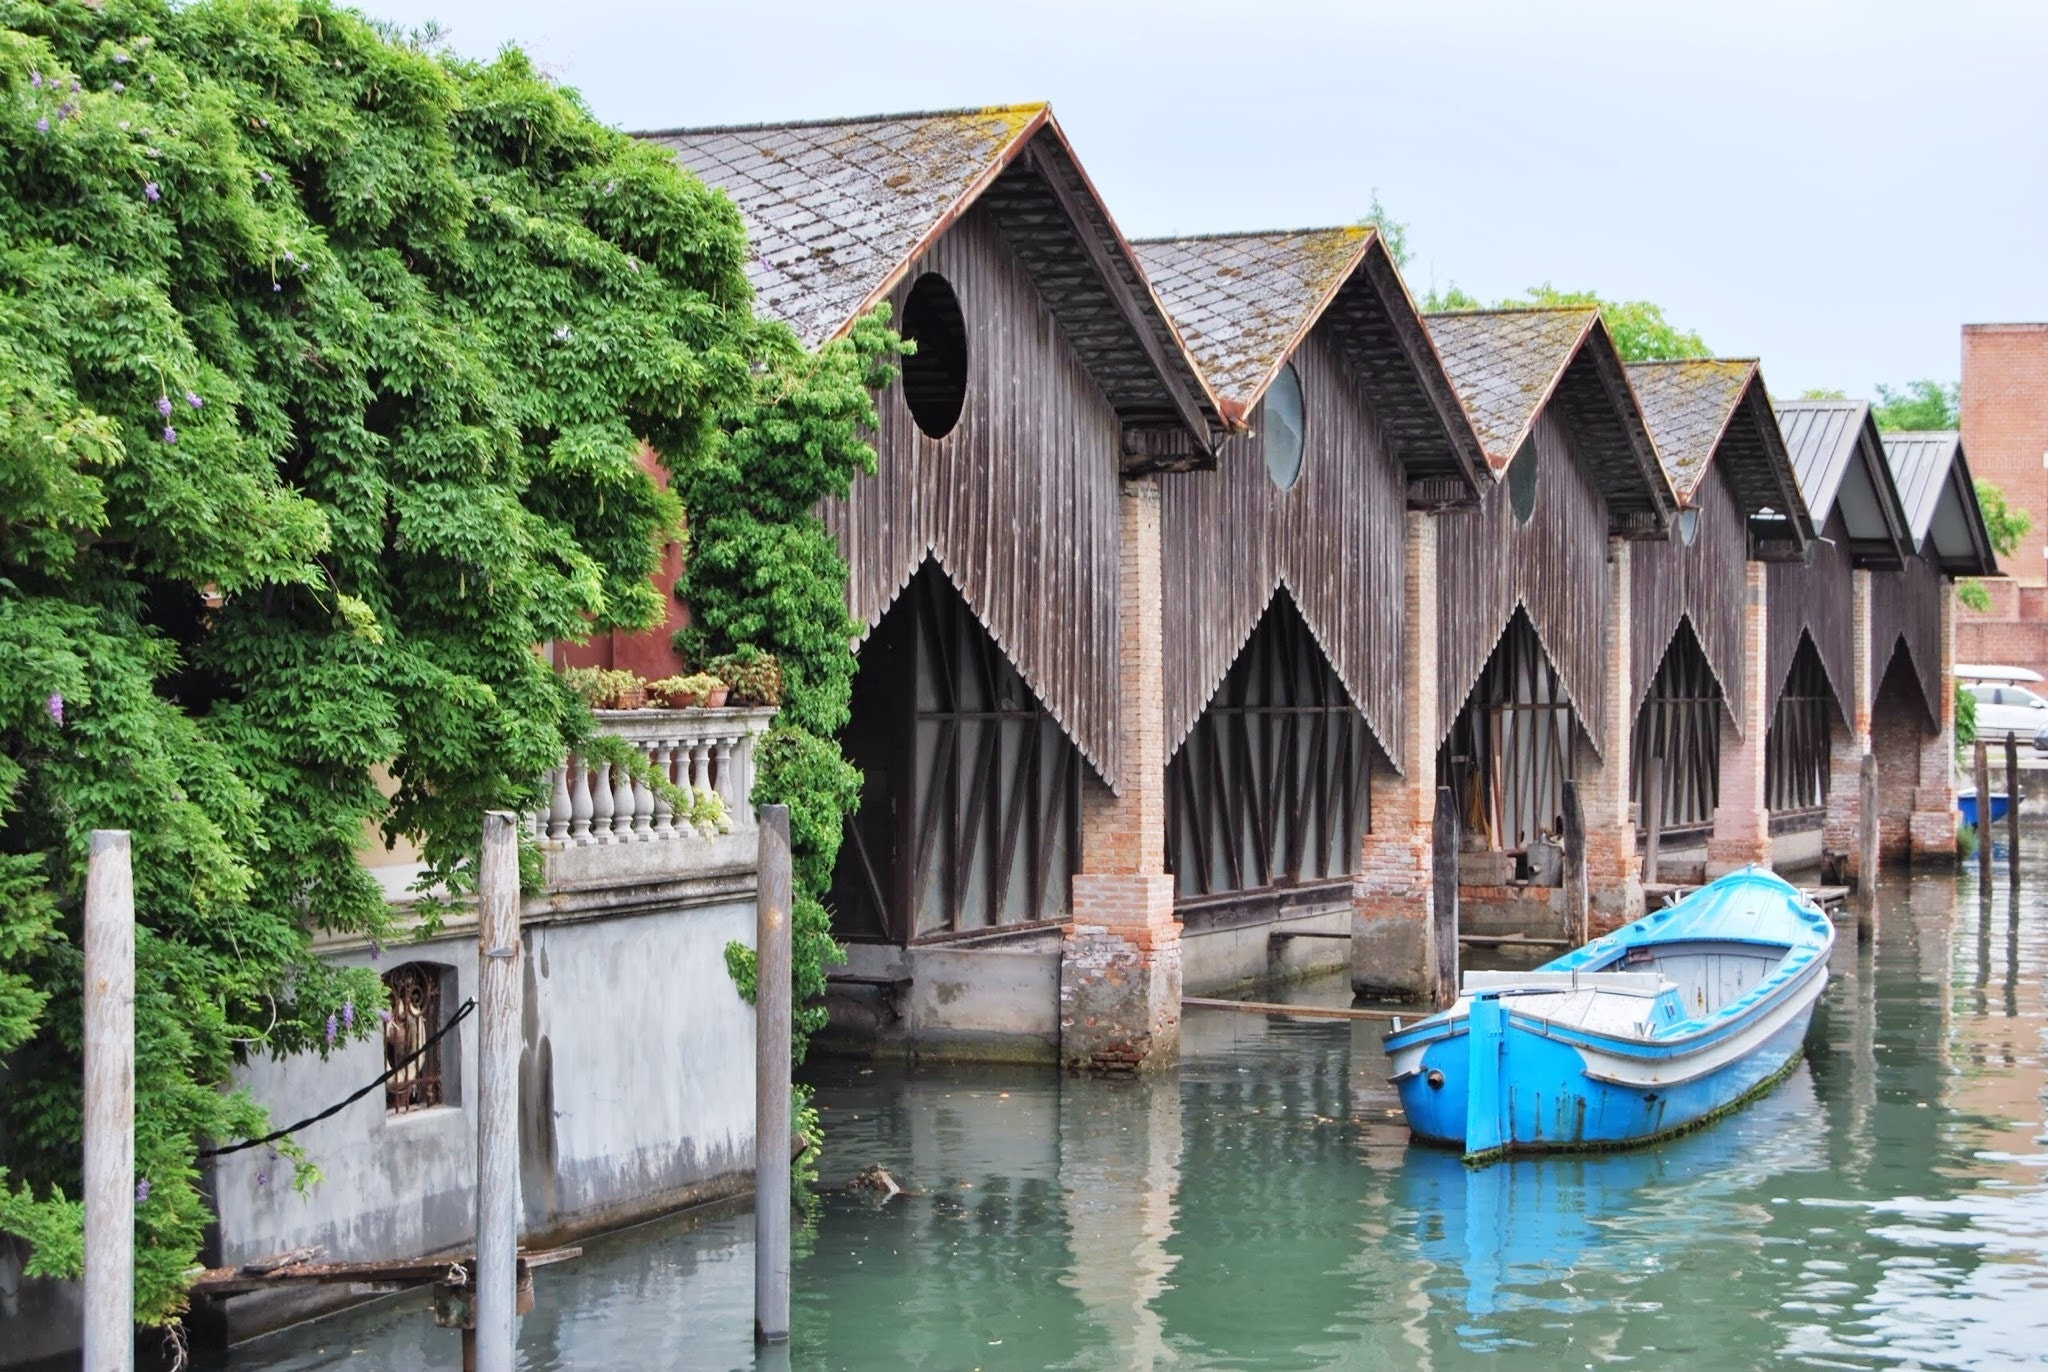 Photograph Boathouses by Mwap38  on 500px